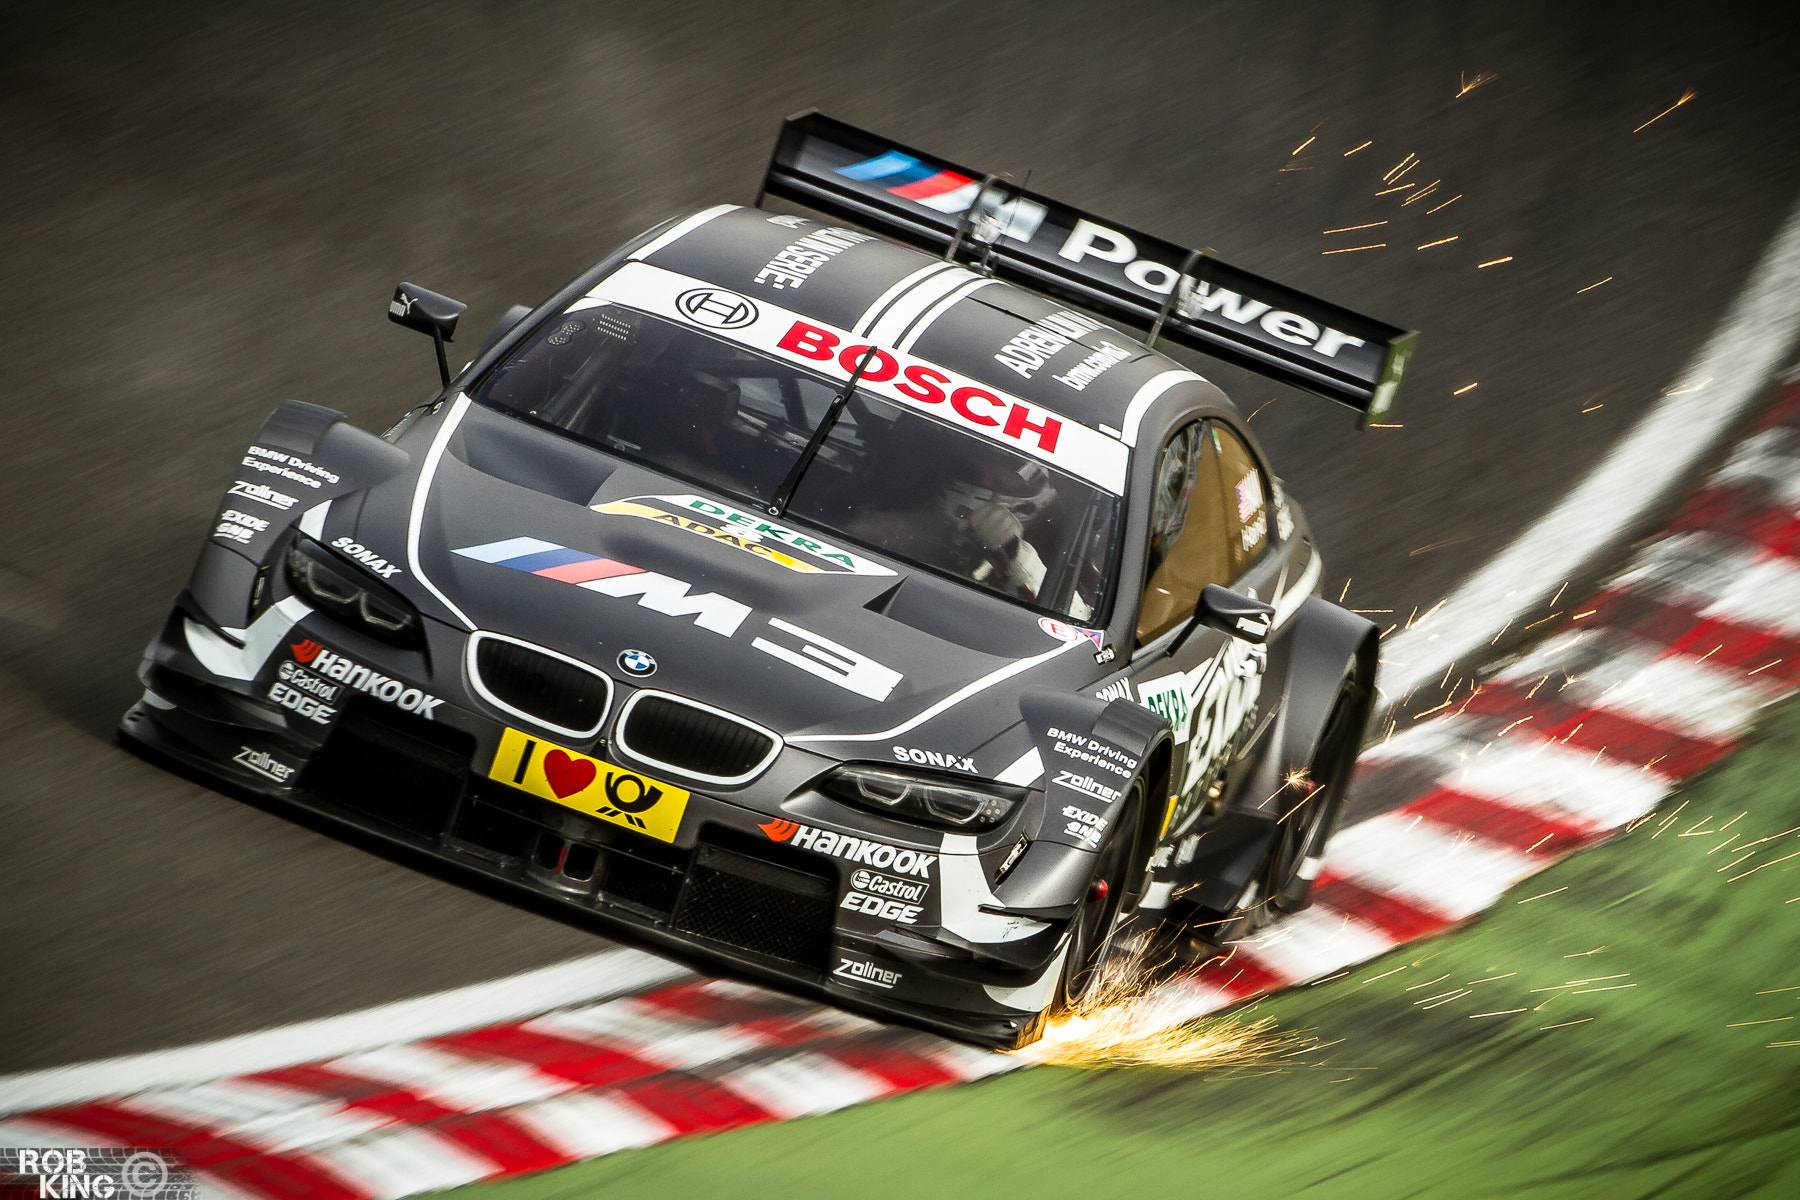 Photograph Joey Hand - BMW M3 DTM - 2013 by Robert King on 500px